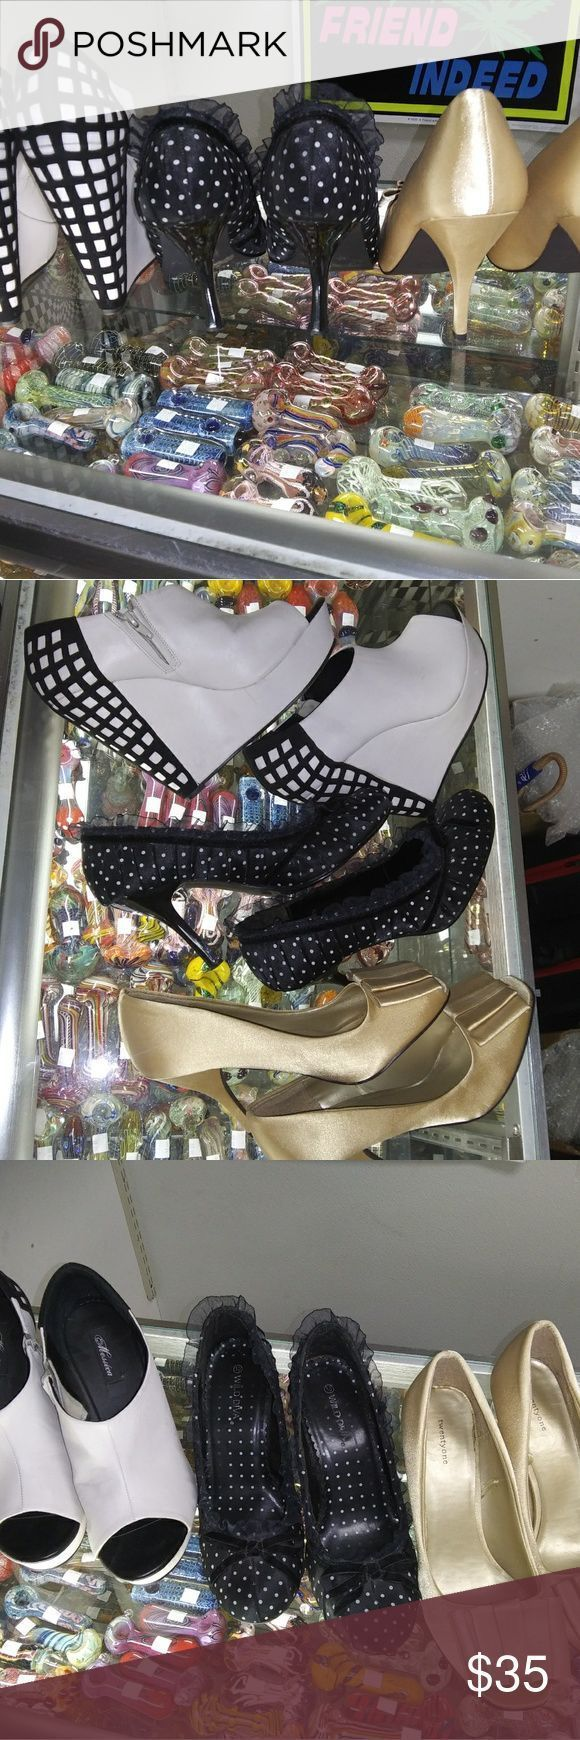 """Photo of Lot of 3 Shoes All size 10. 1.Gold satin,Peep-toe,Origami bow,3″ heel """"FOREVER 2…,  #1Gold …"""